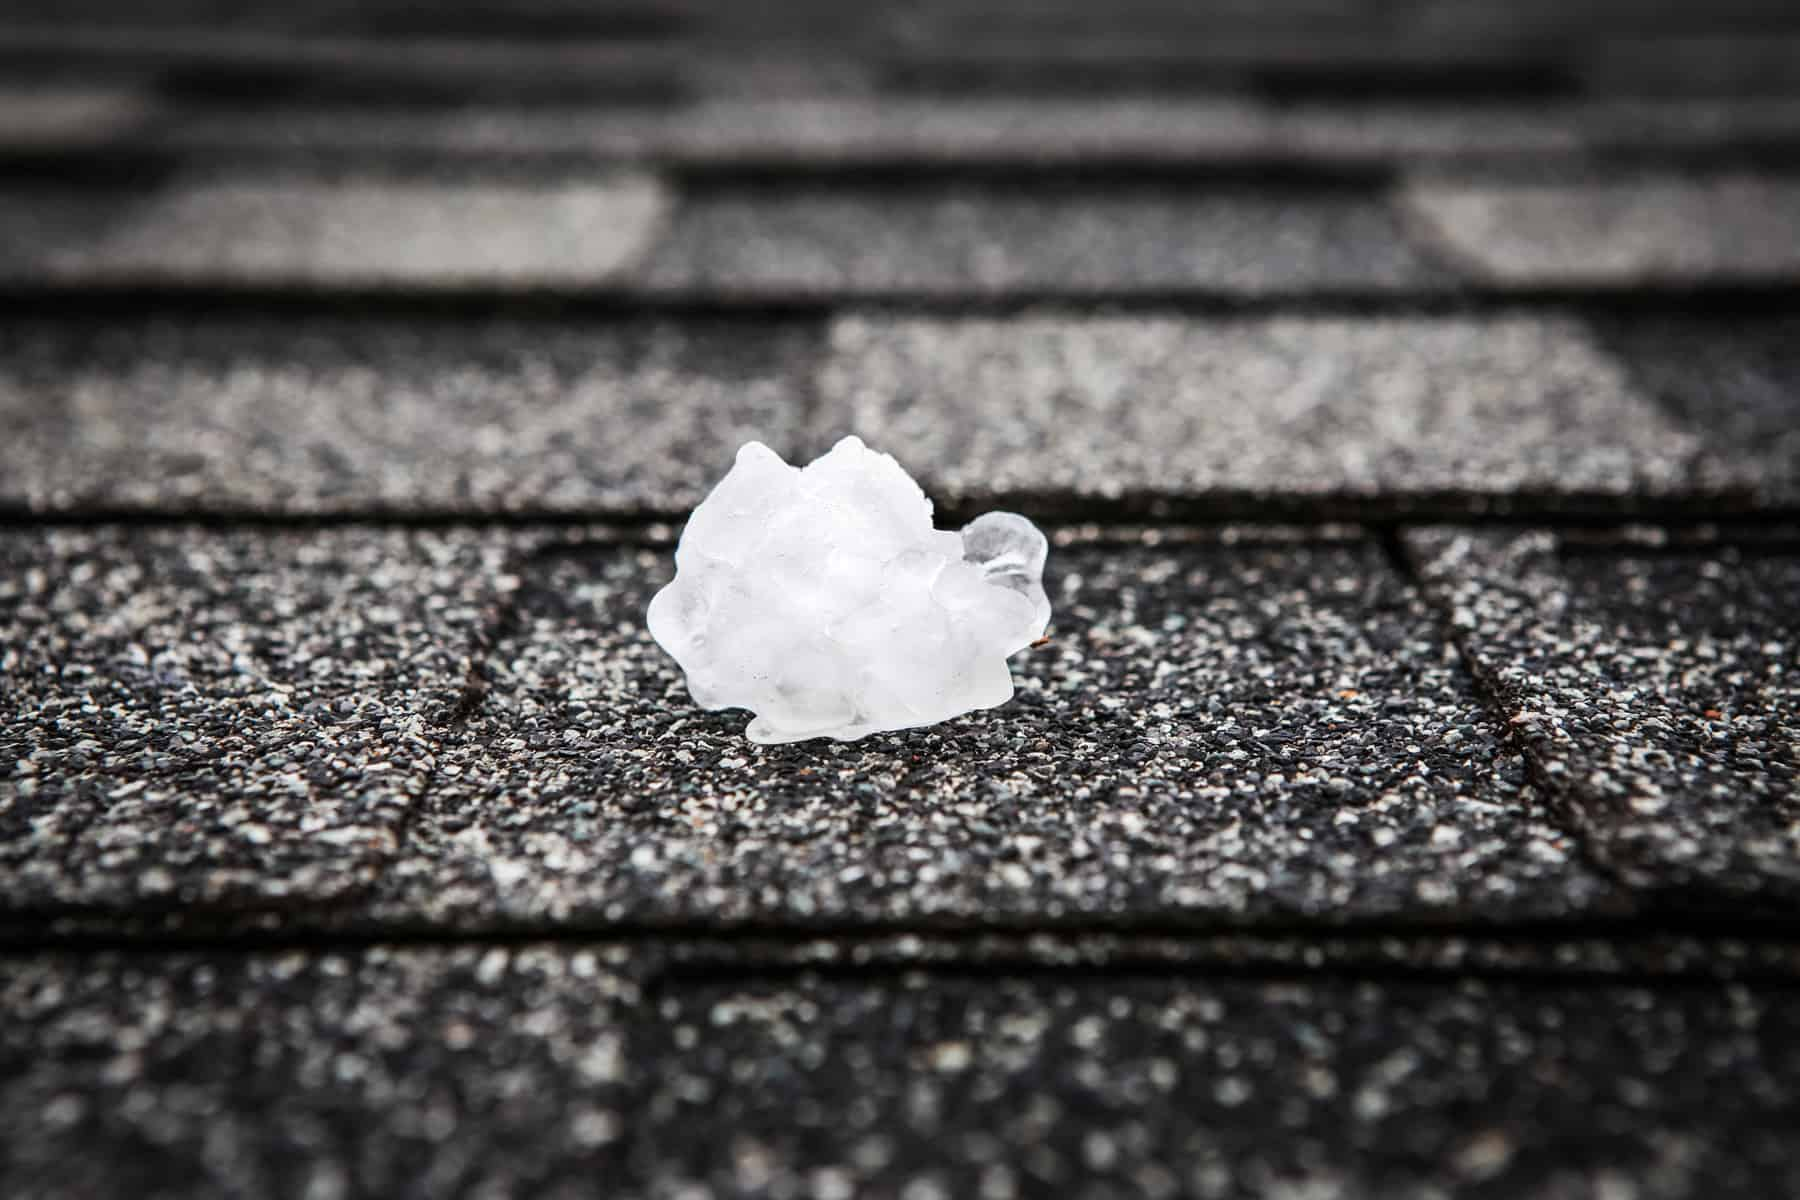 A single piece of white hail atop an asphalt shingle on a roof.